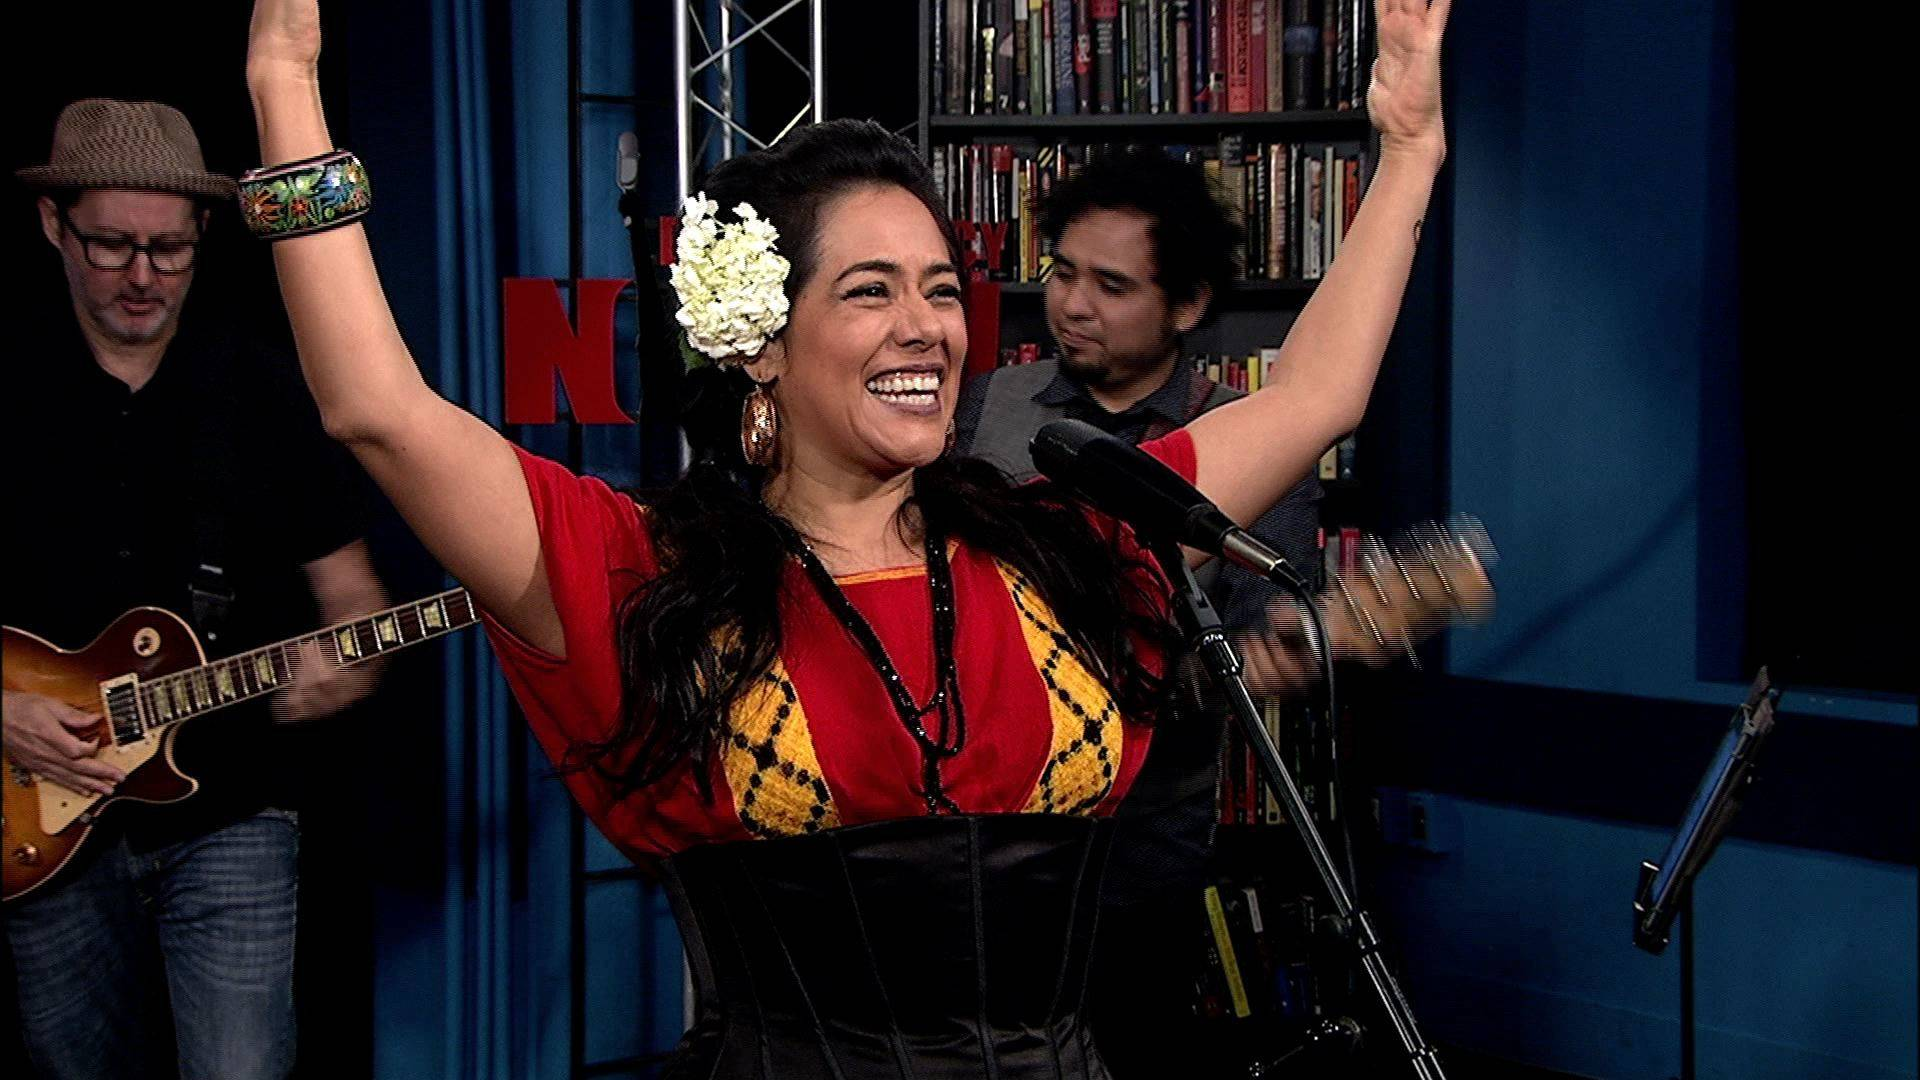 Liladowns performance closeup